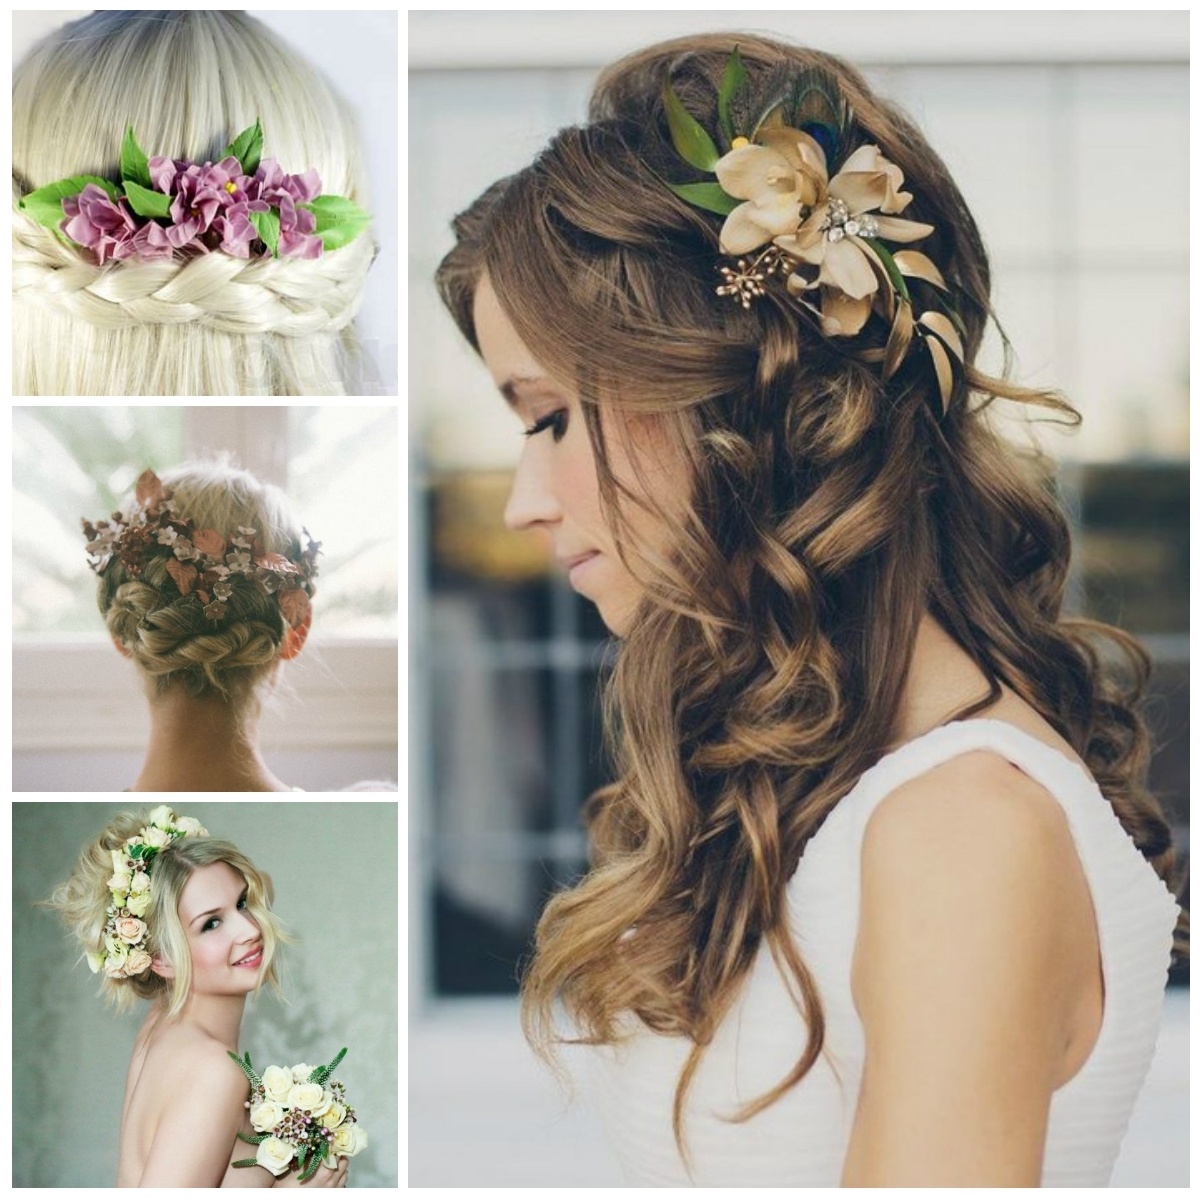 Famous Wedding Hairstyles For Long Hair With Flowers Throughout Wedding Hairstyles With Flowers (View 15 of 15)